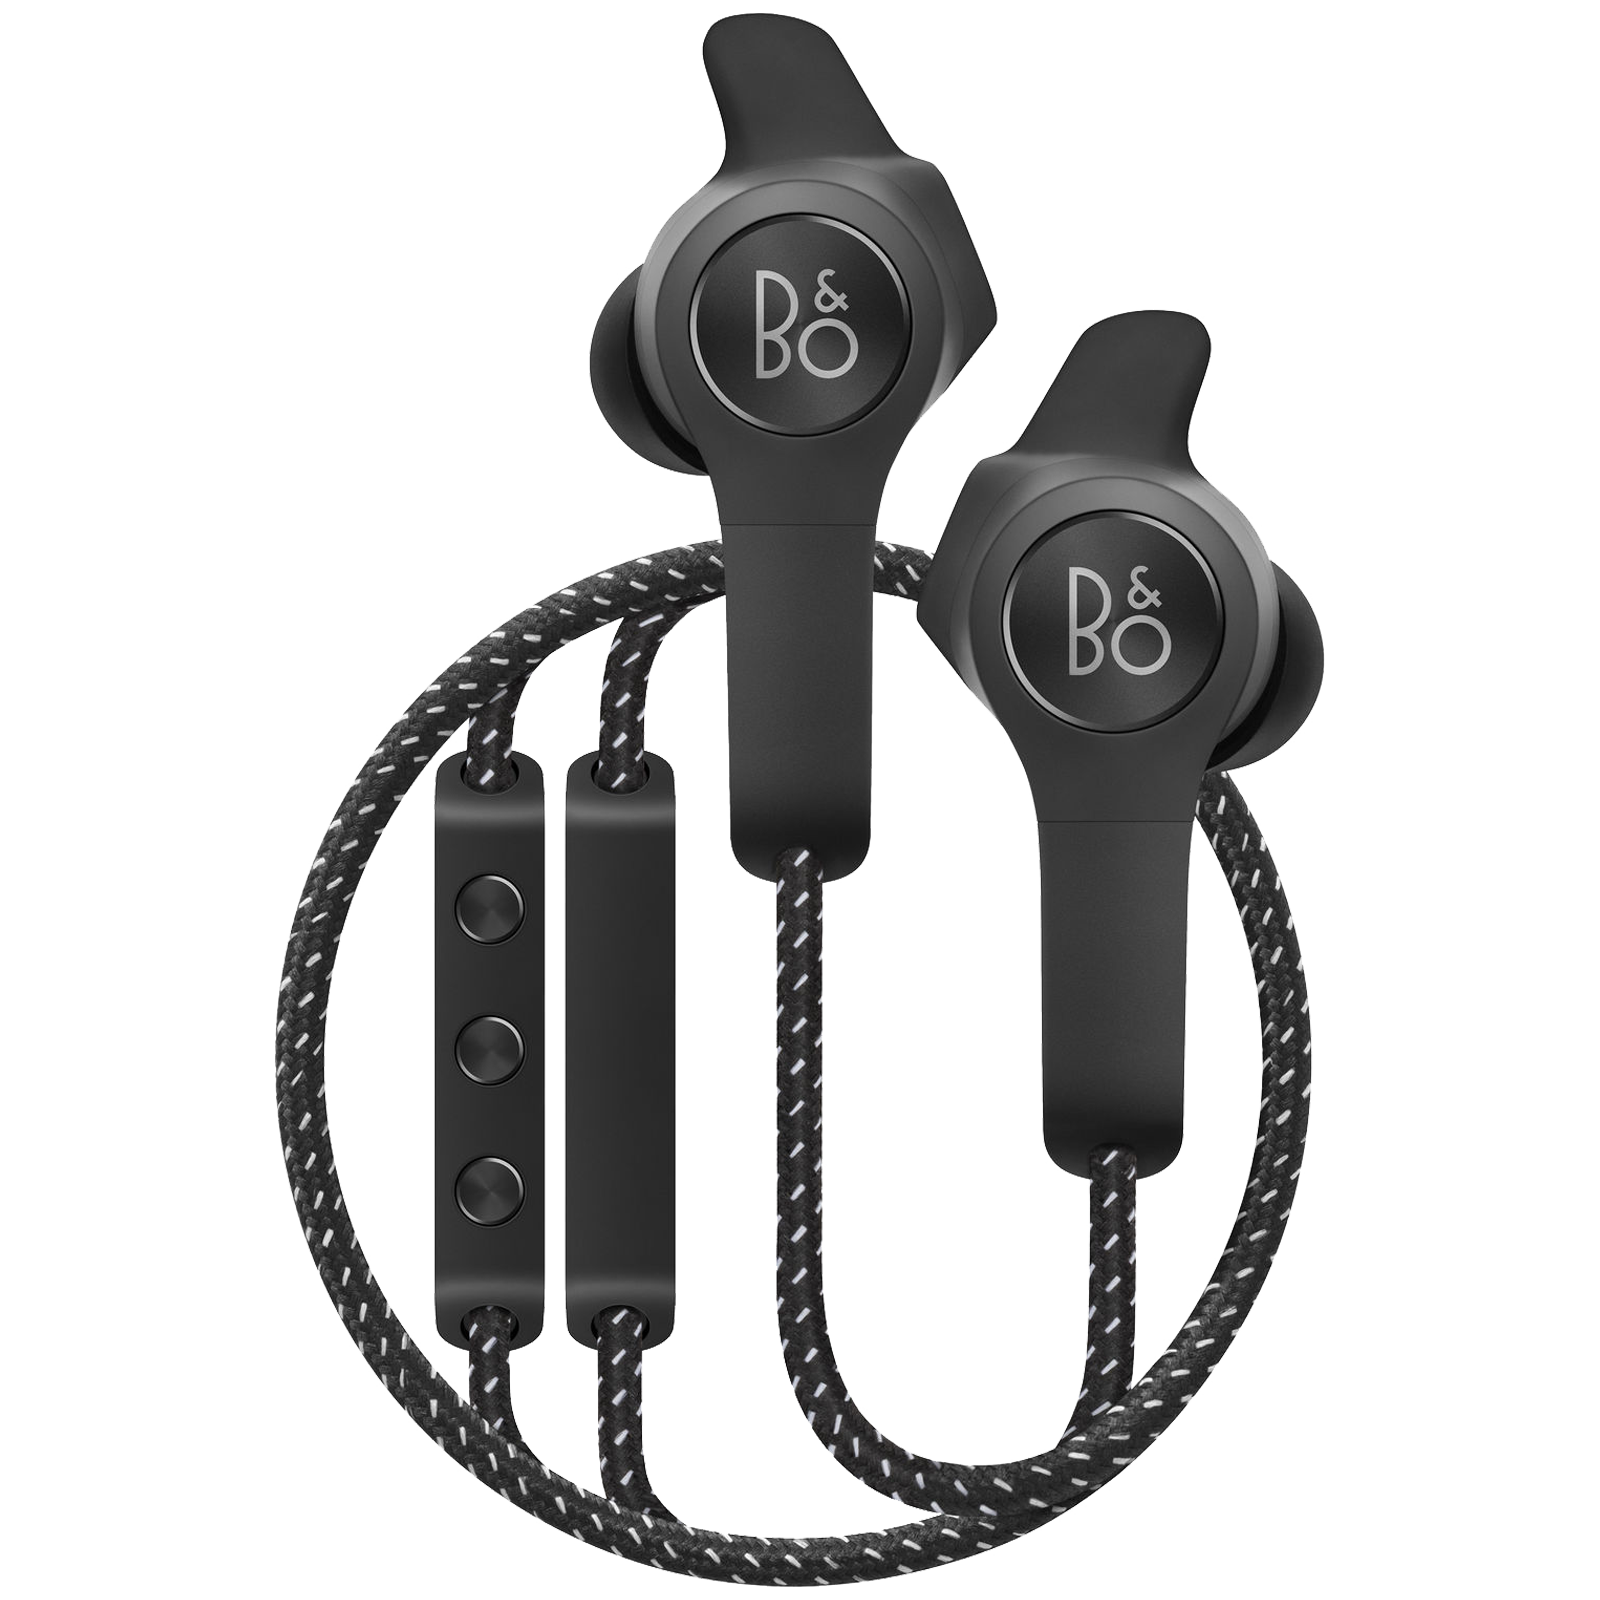 Bang & Olufsen Beoplay E6 In-Ear Passive Noise Cancellation Wireless Earphone with Mic (Bluetooth 4.2, Splash and Dust Resistant, BO-BPE6-BLK, Black)_1